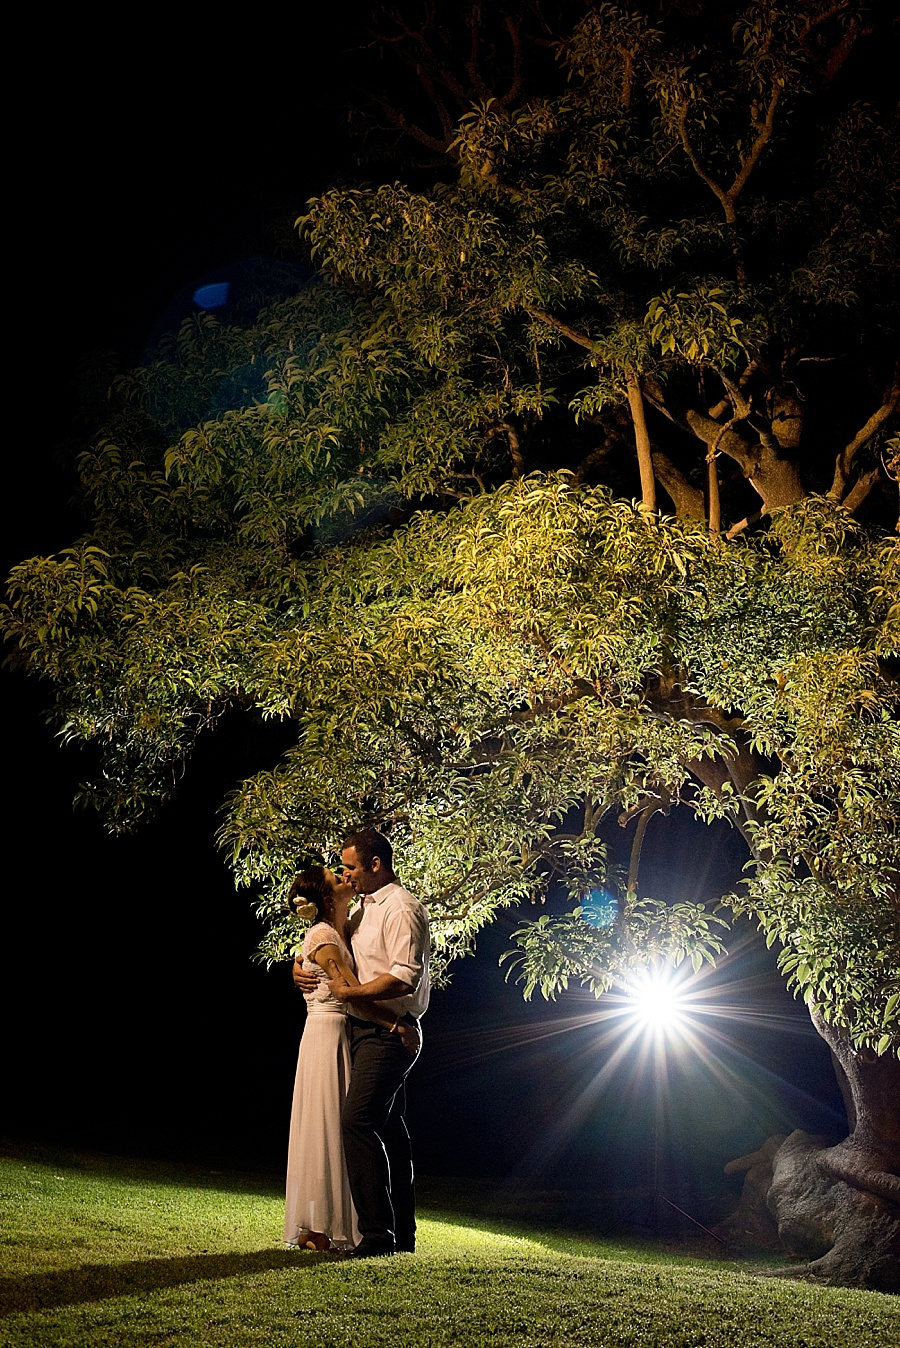 Darren Bester - Cape Town Wedding Photographer - Stanford - De Uijlenes_0075.jpg